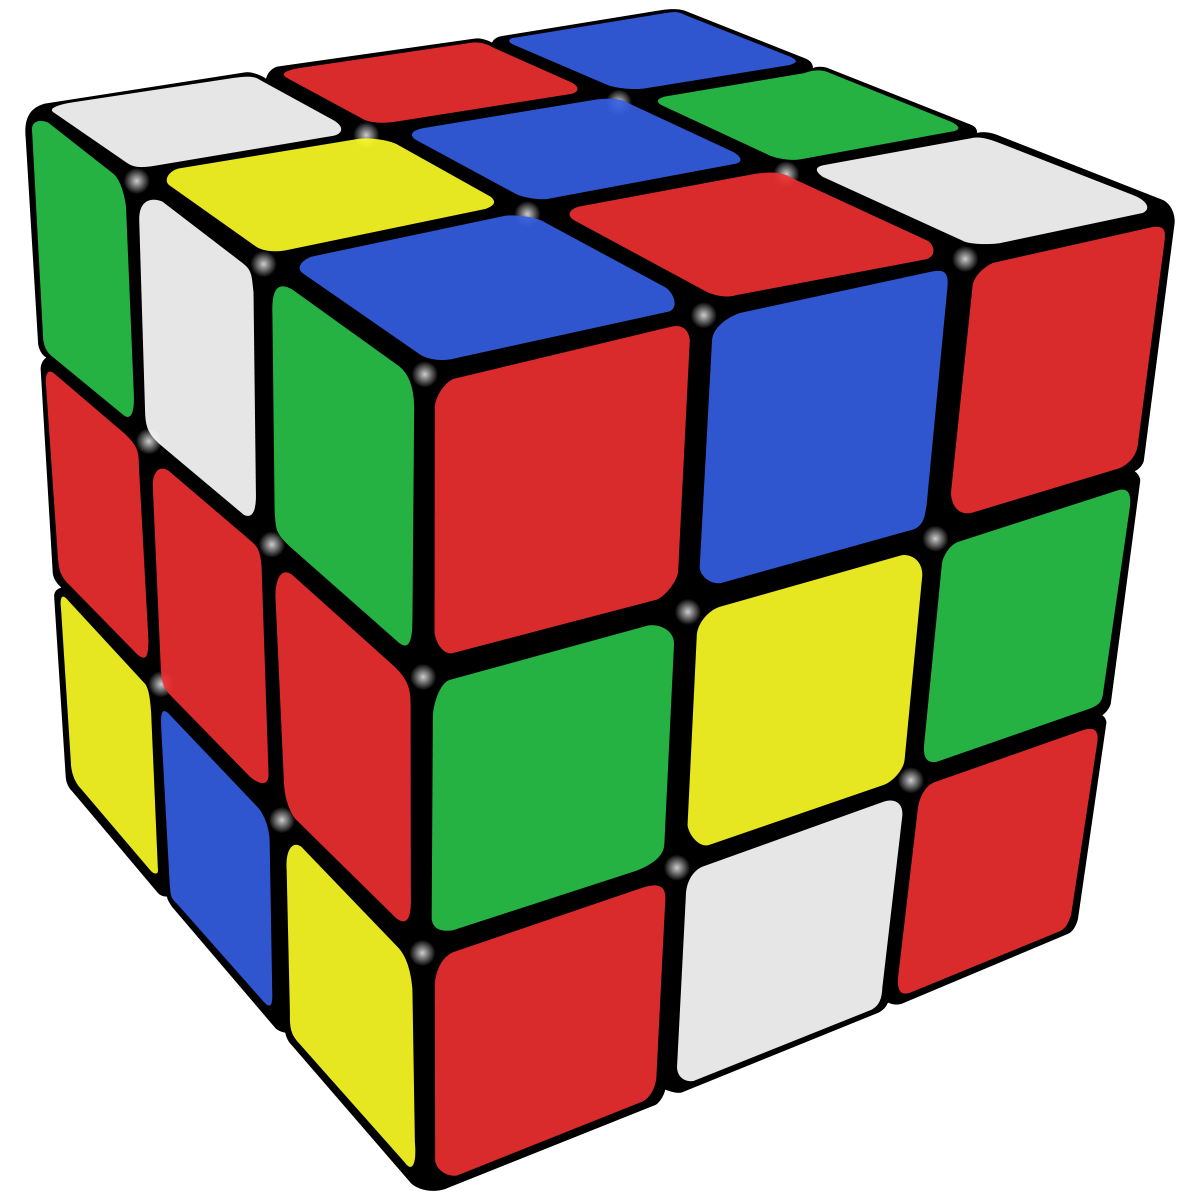 1200x1200 Optimal Solutions For Rubik's Cube